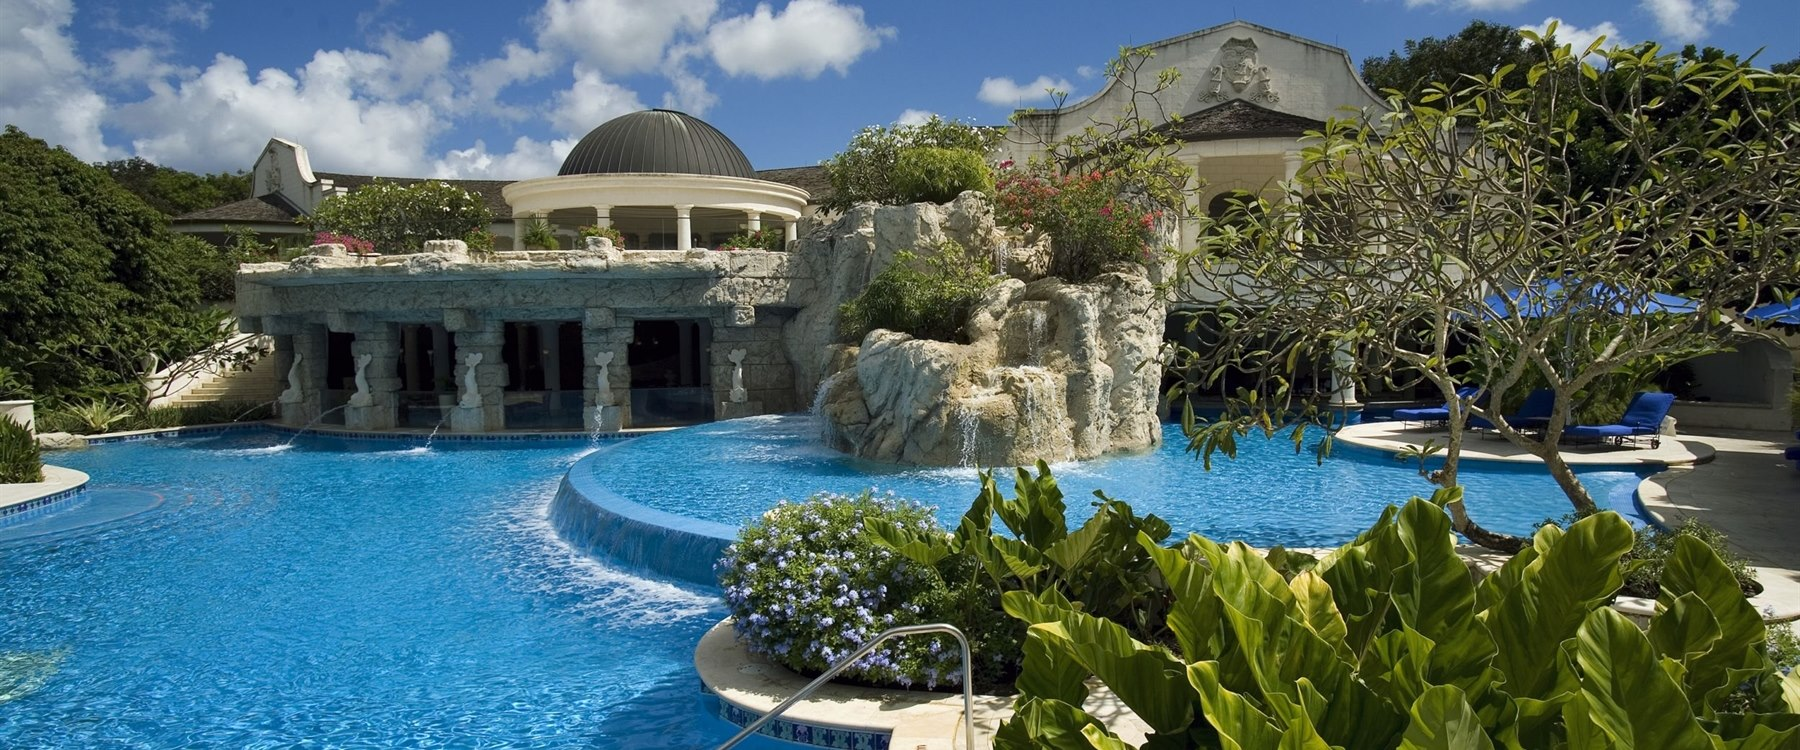 Stunning pool area at Sandy Lane, Barbados